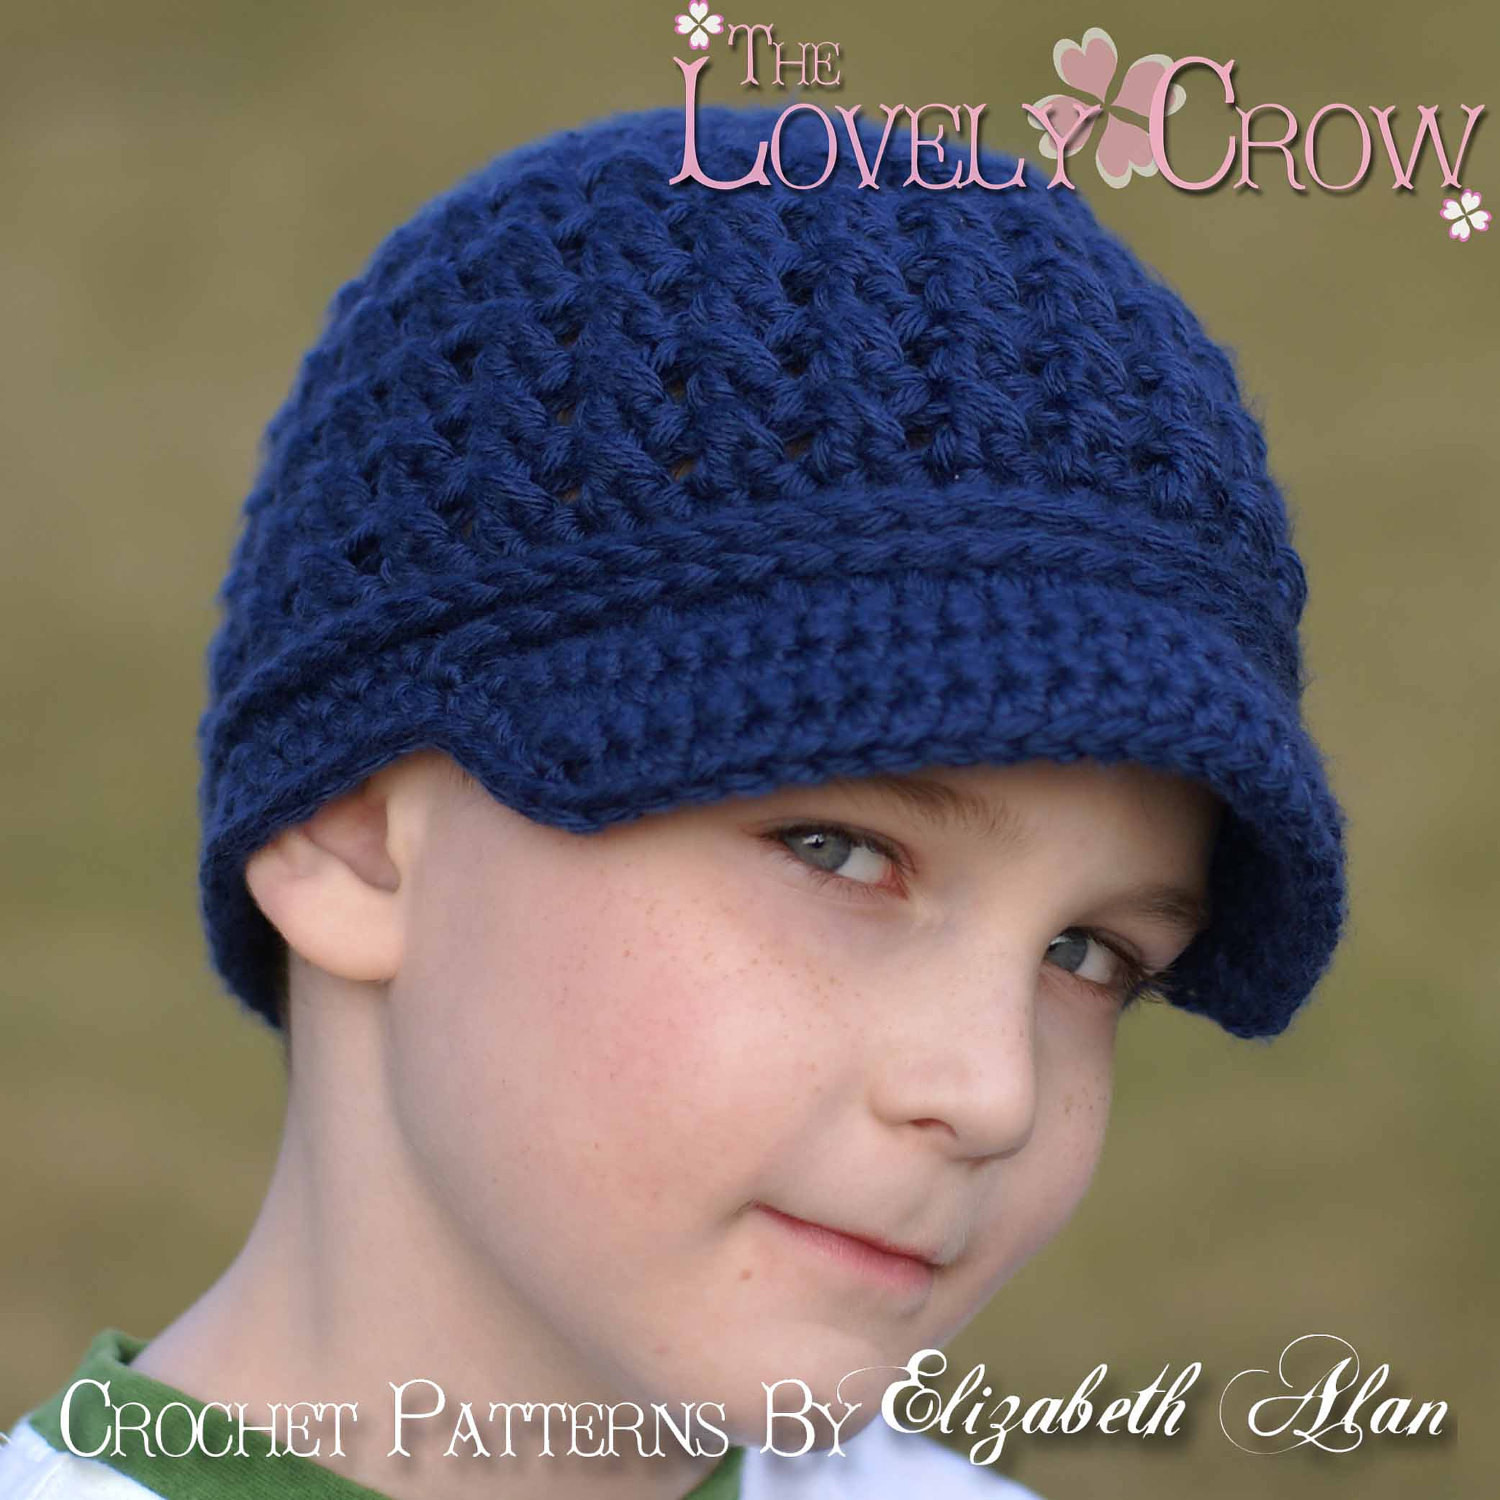 Elegant Newsboy Hat Crochet Pattern Little Sport Newsboy Hat Digital Free Crochet Hat Patterns for Boys Of Fresh 46 Photos Free Crochet Hat Patterns for Boys